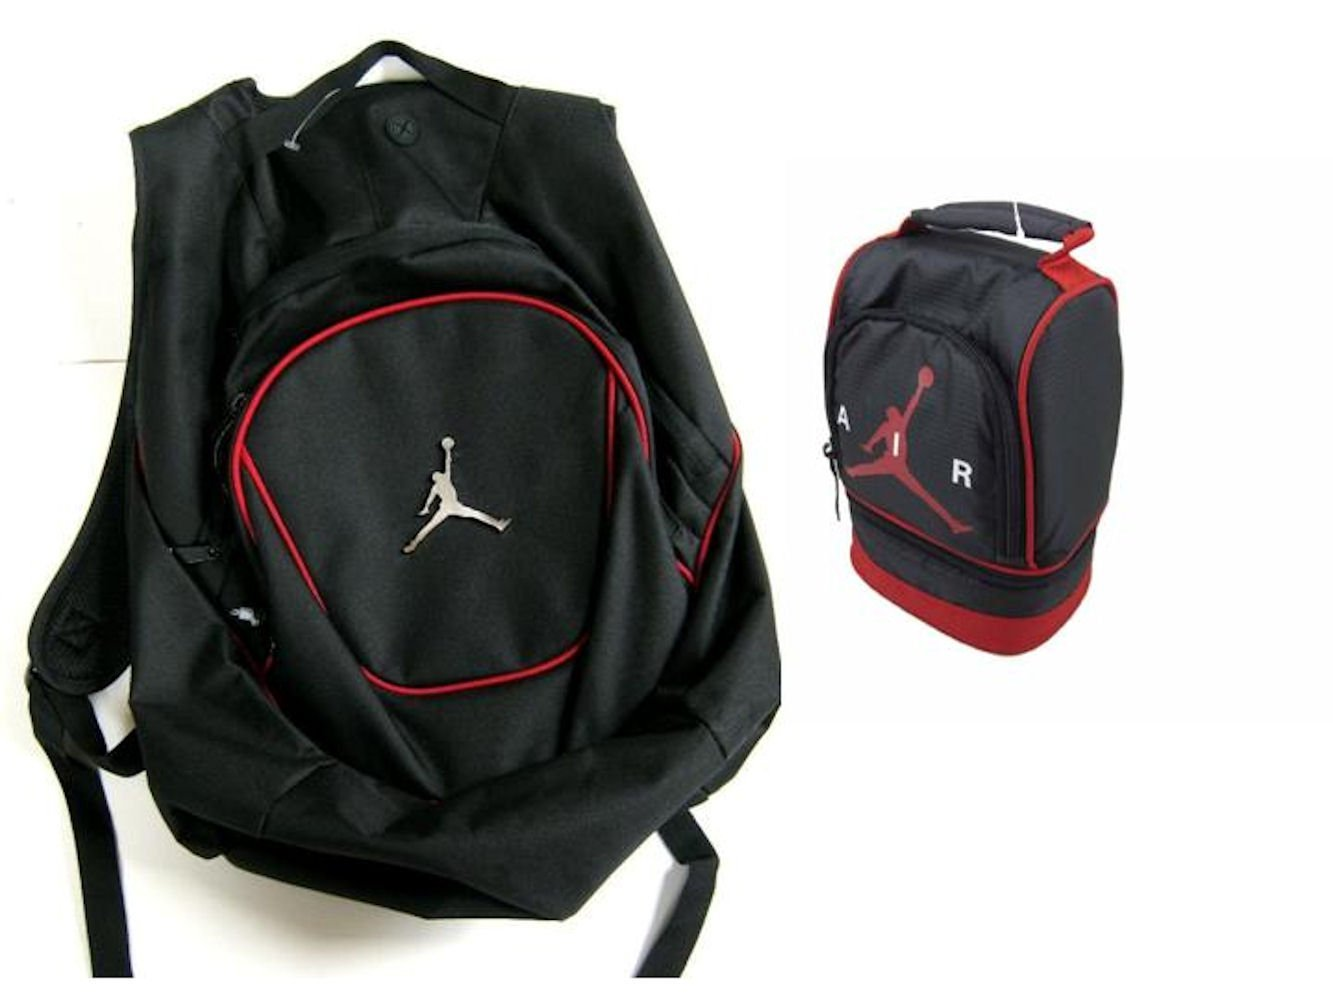 4dca013c08f Get Quotations · Nike Air Jordan Jumpman 23 Red Ring Backpack   Black Air  Lunch Tote Bag Combo +